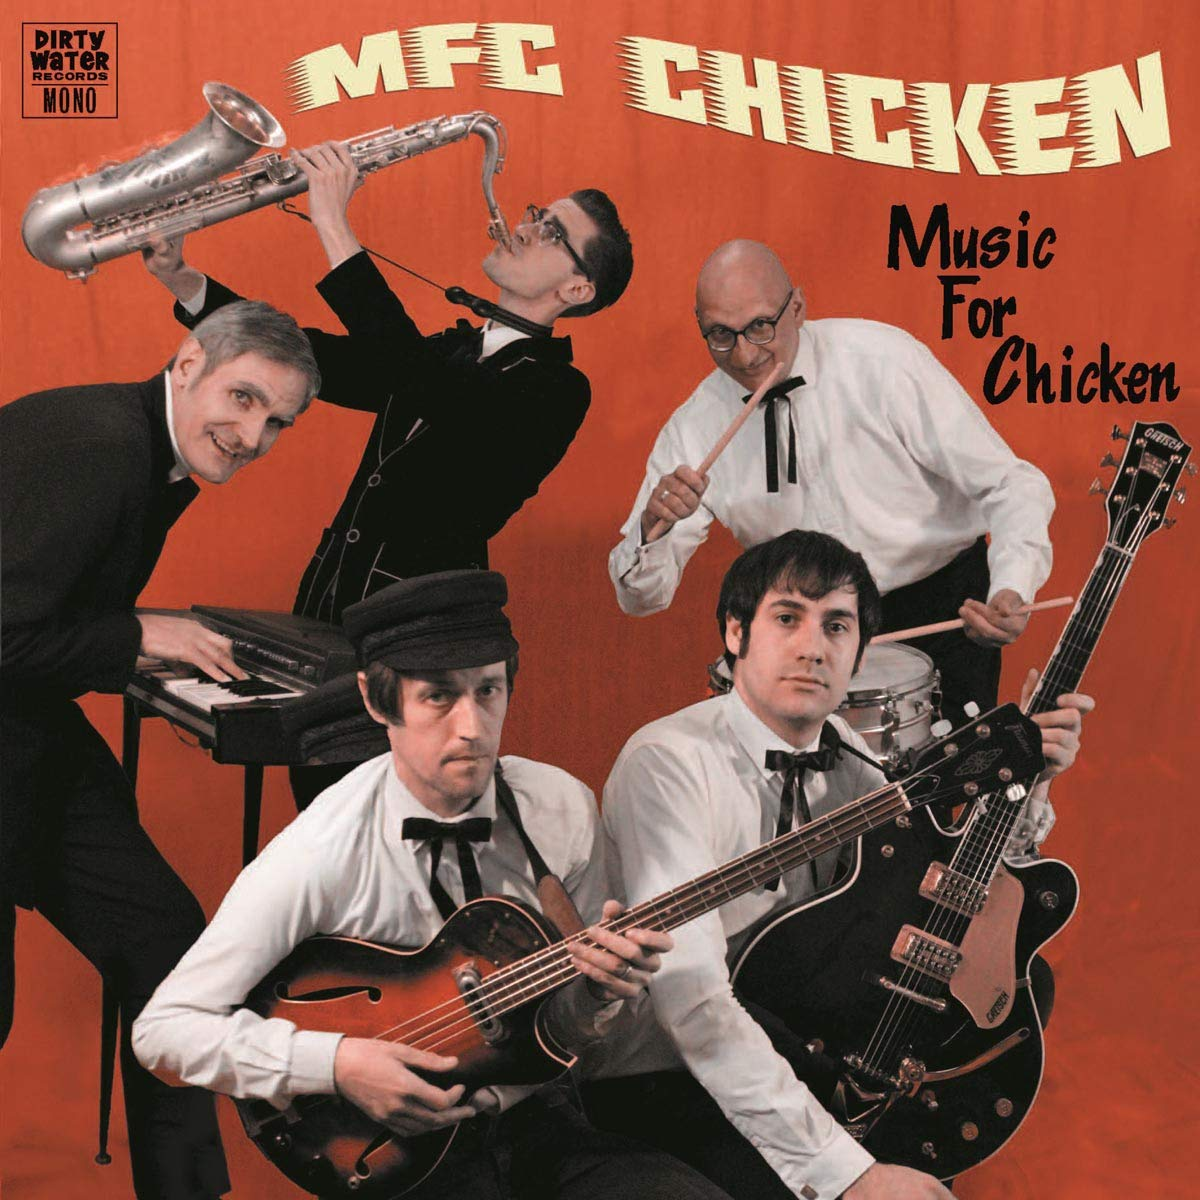 Music for Chicken : Mfc Chicken: Amazon.fr: Musique